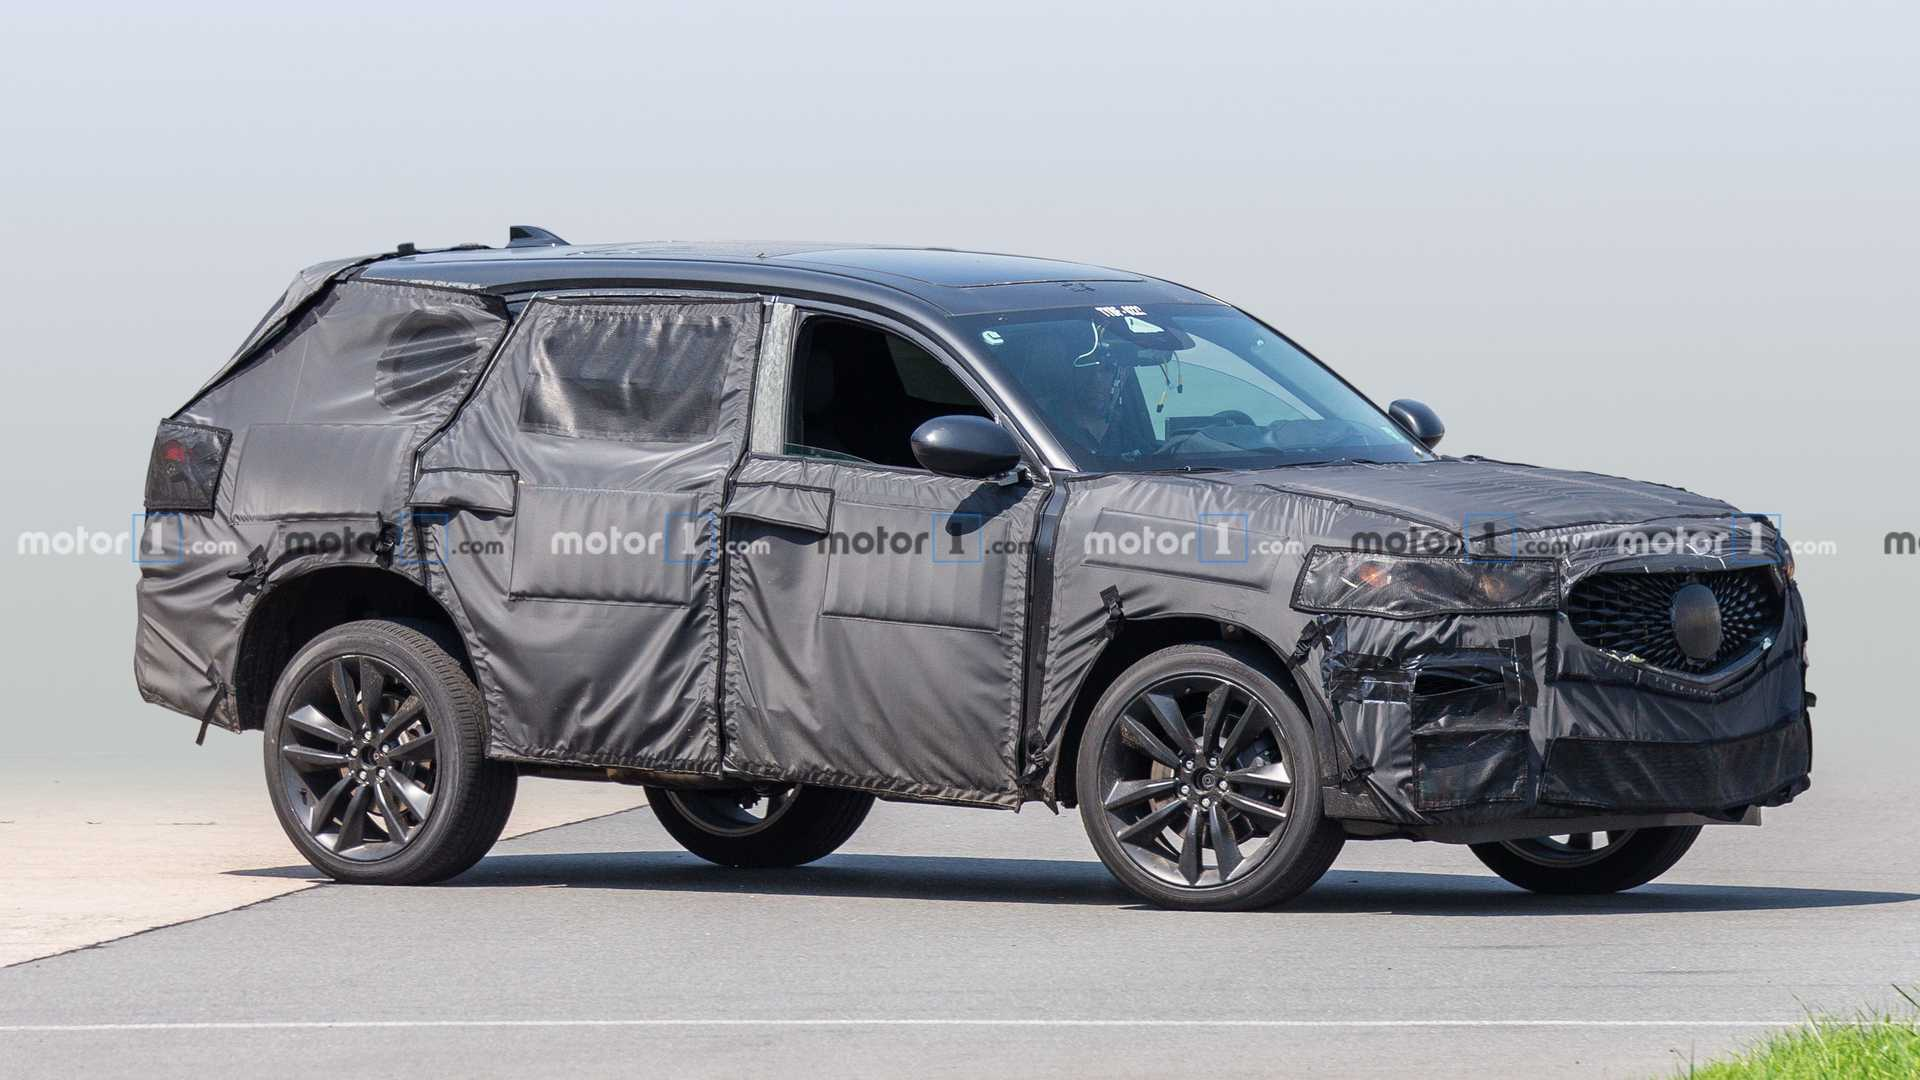 Koenigsegg Video Beautiful 2020 Acura Mdx Type S Spy Shots and Release Date Info